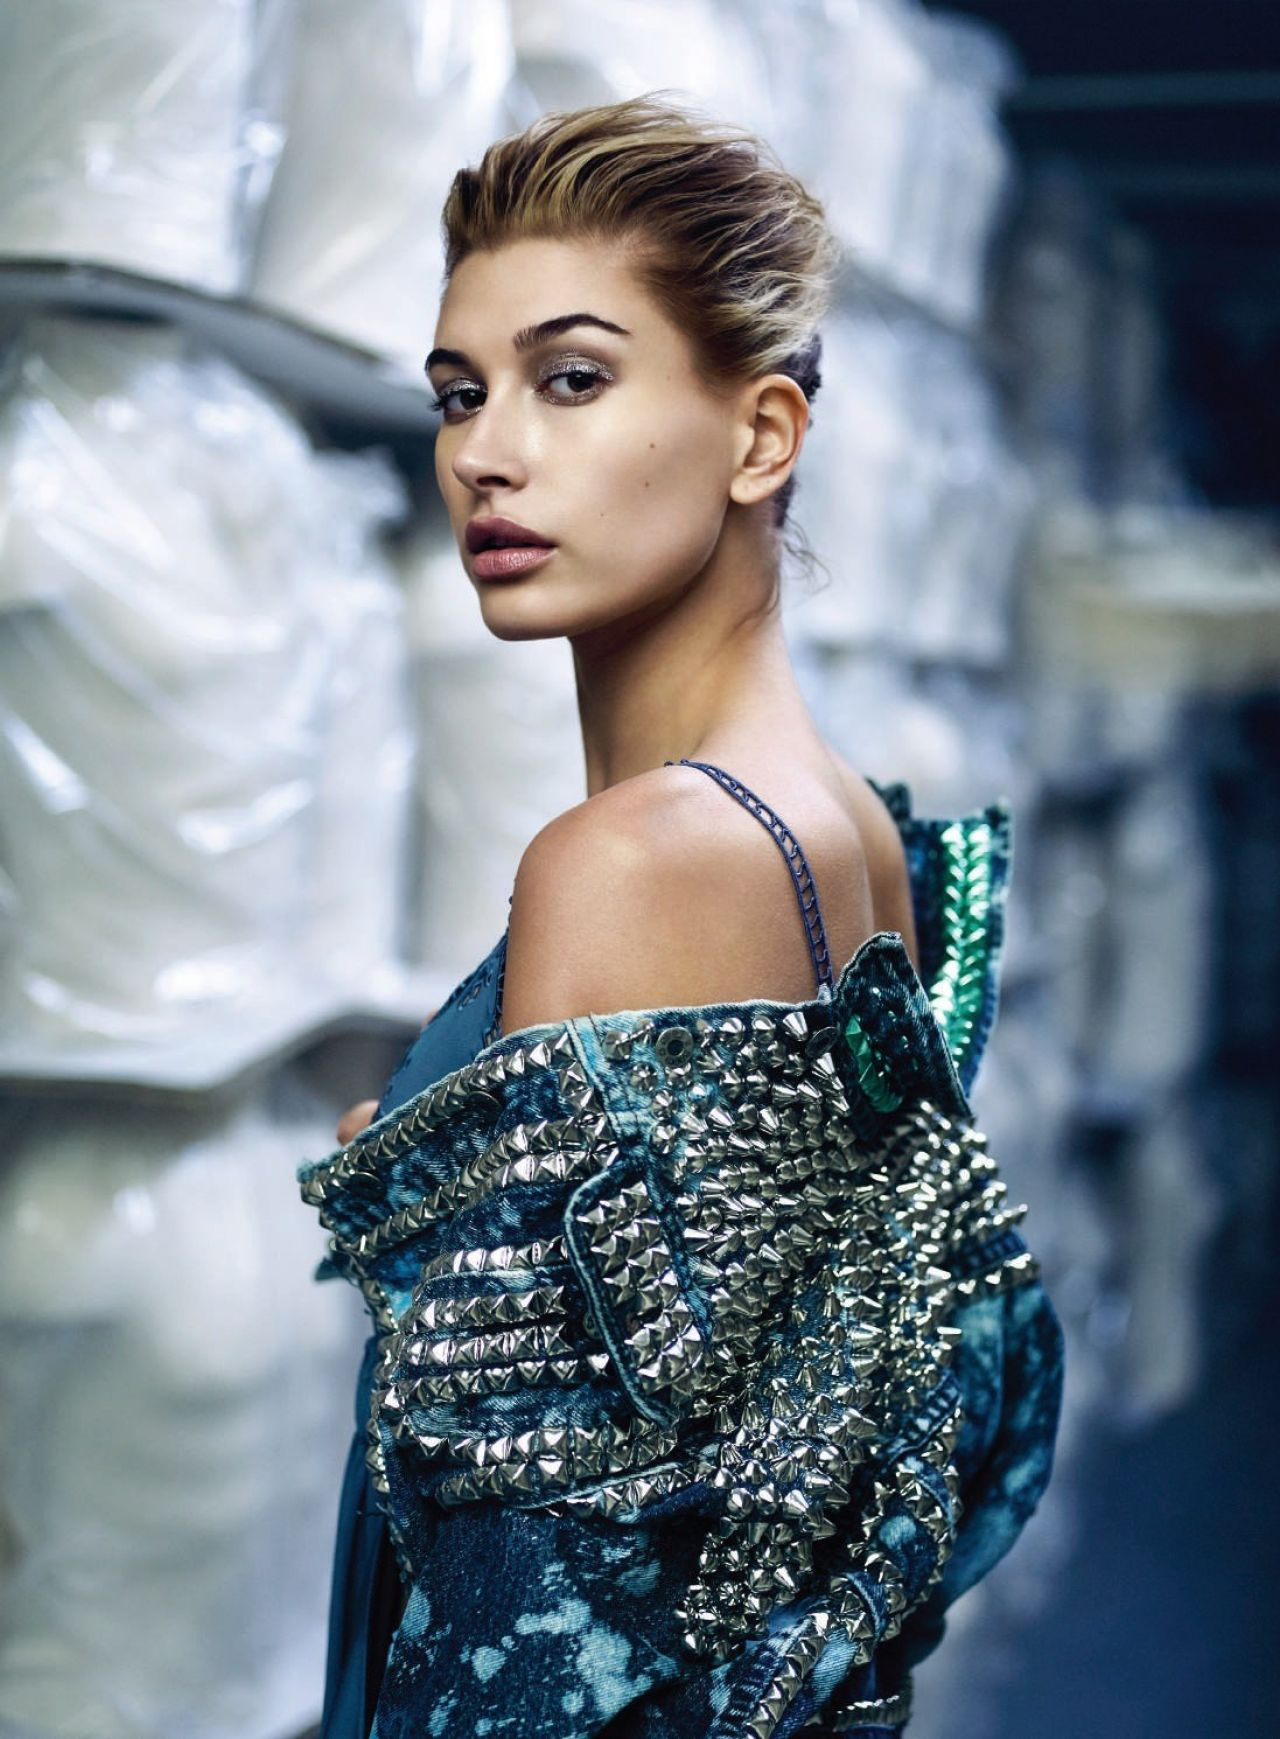 hailey baldwin - photo #15